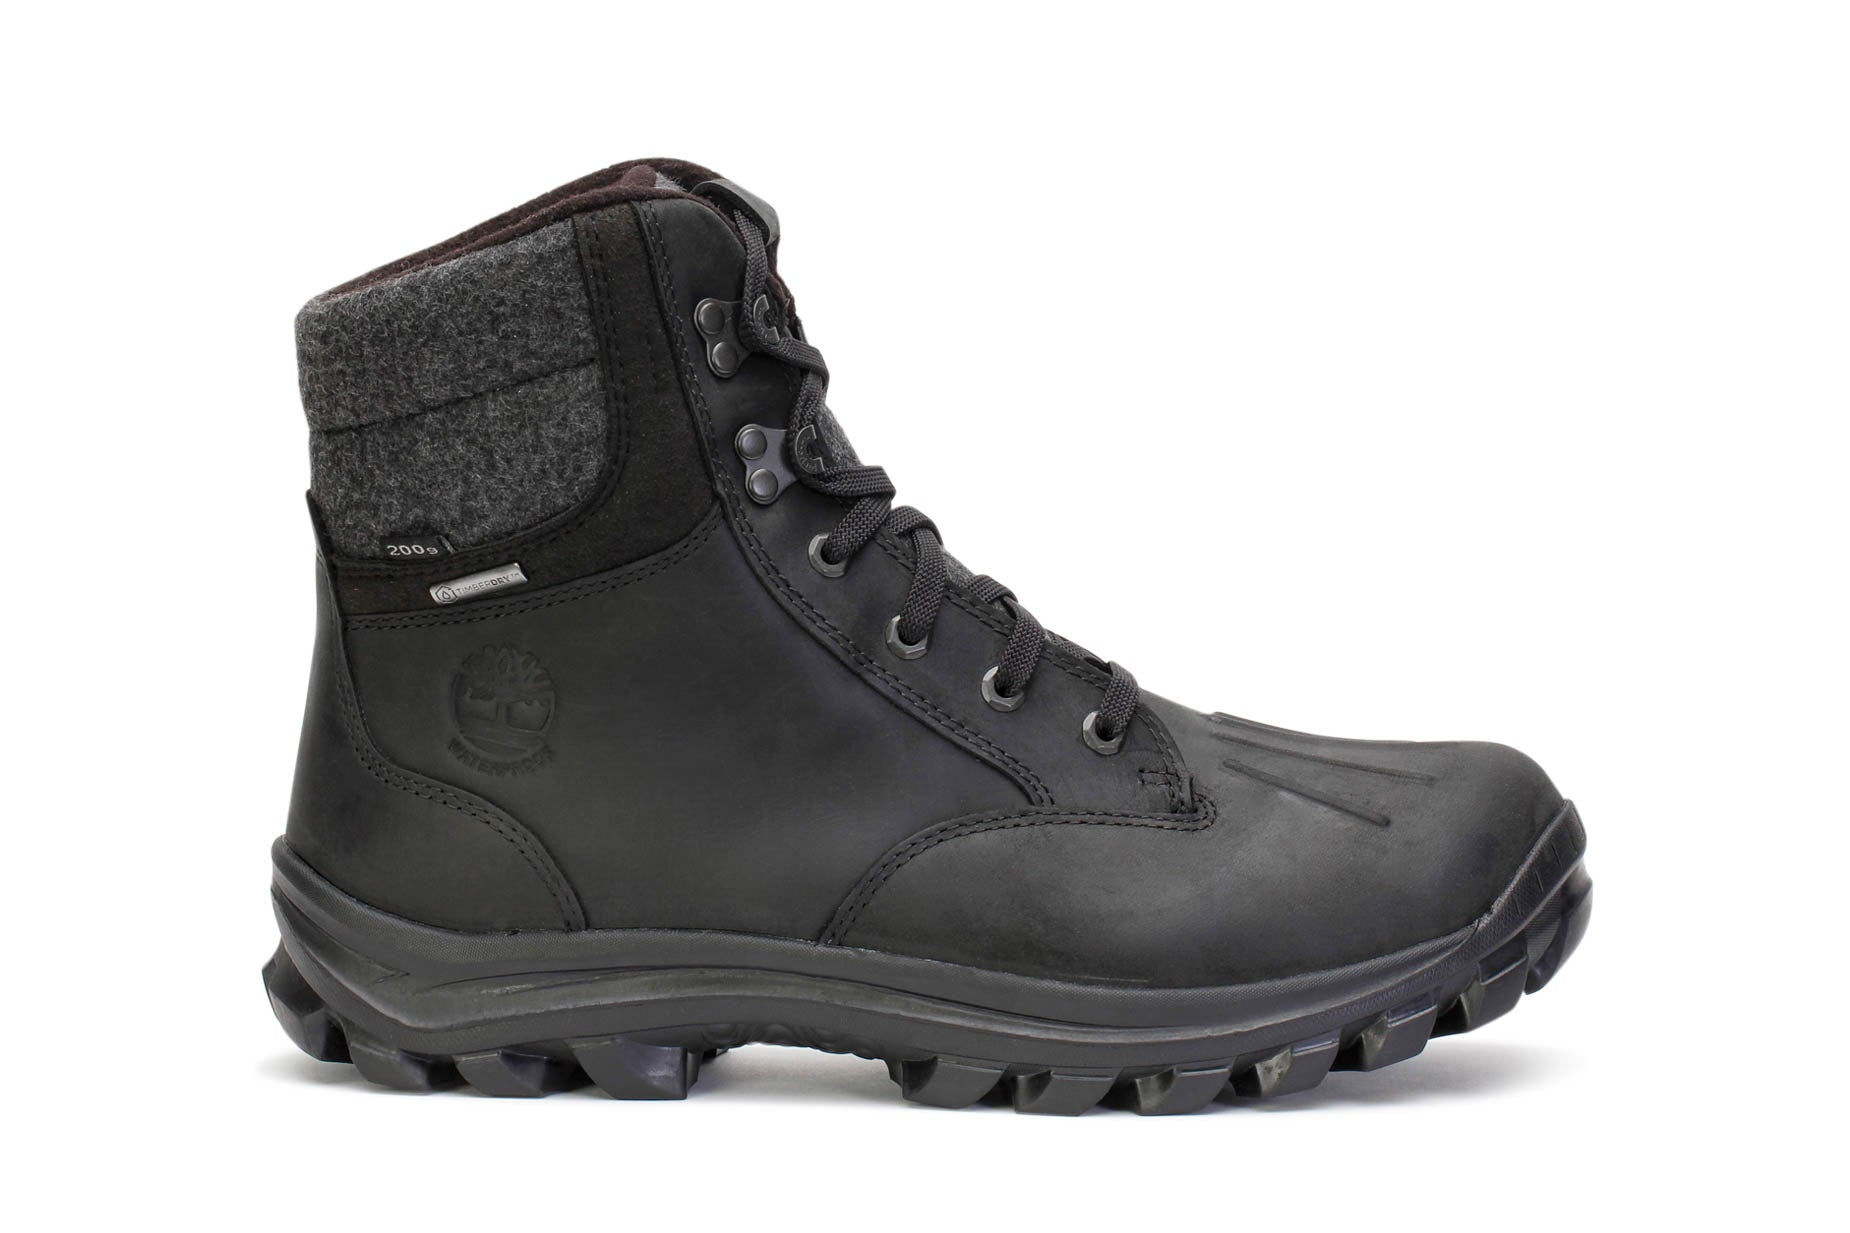 timberland-mens-chillberg-mid-waterproof-insulated-boots-black-a198s-main